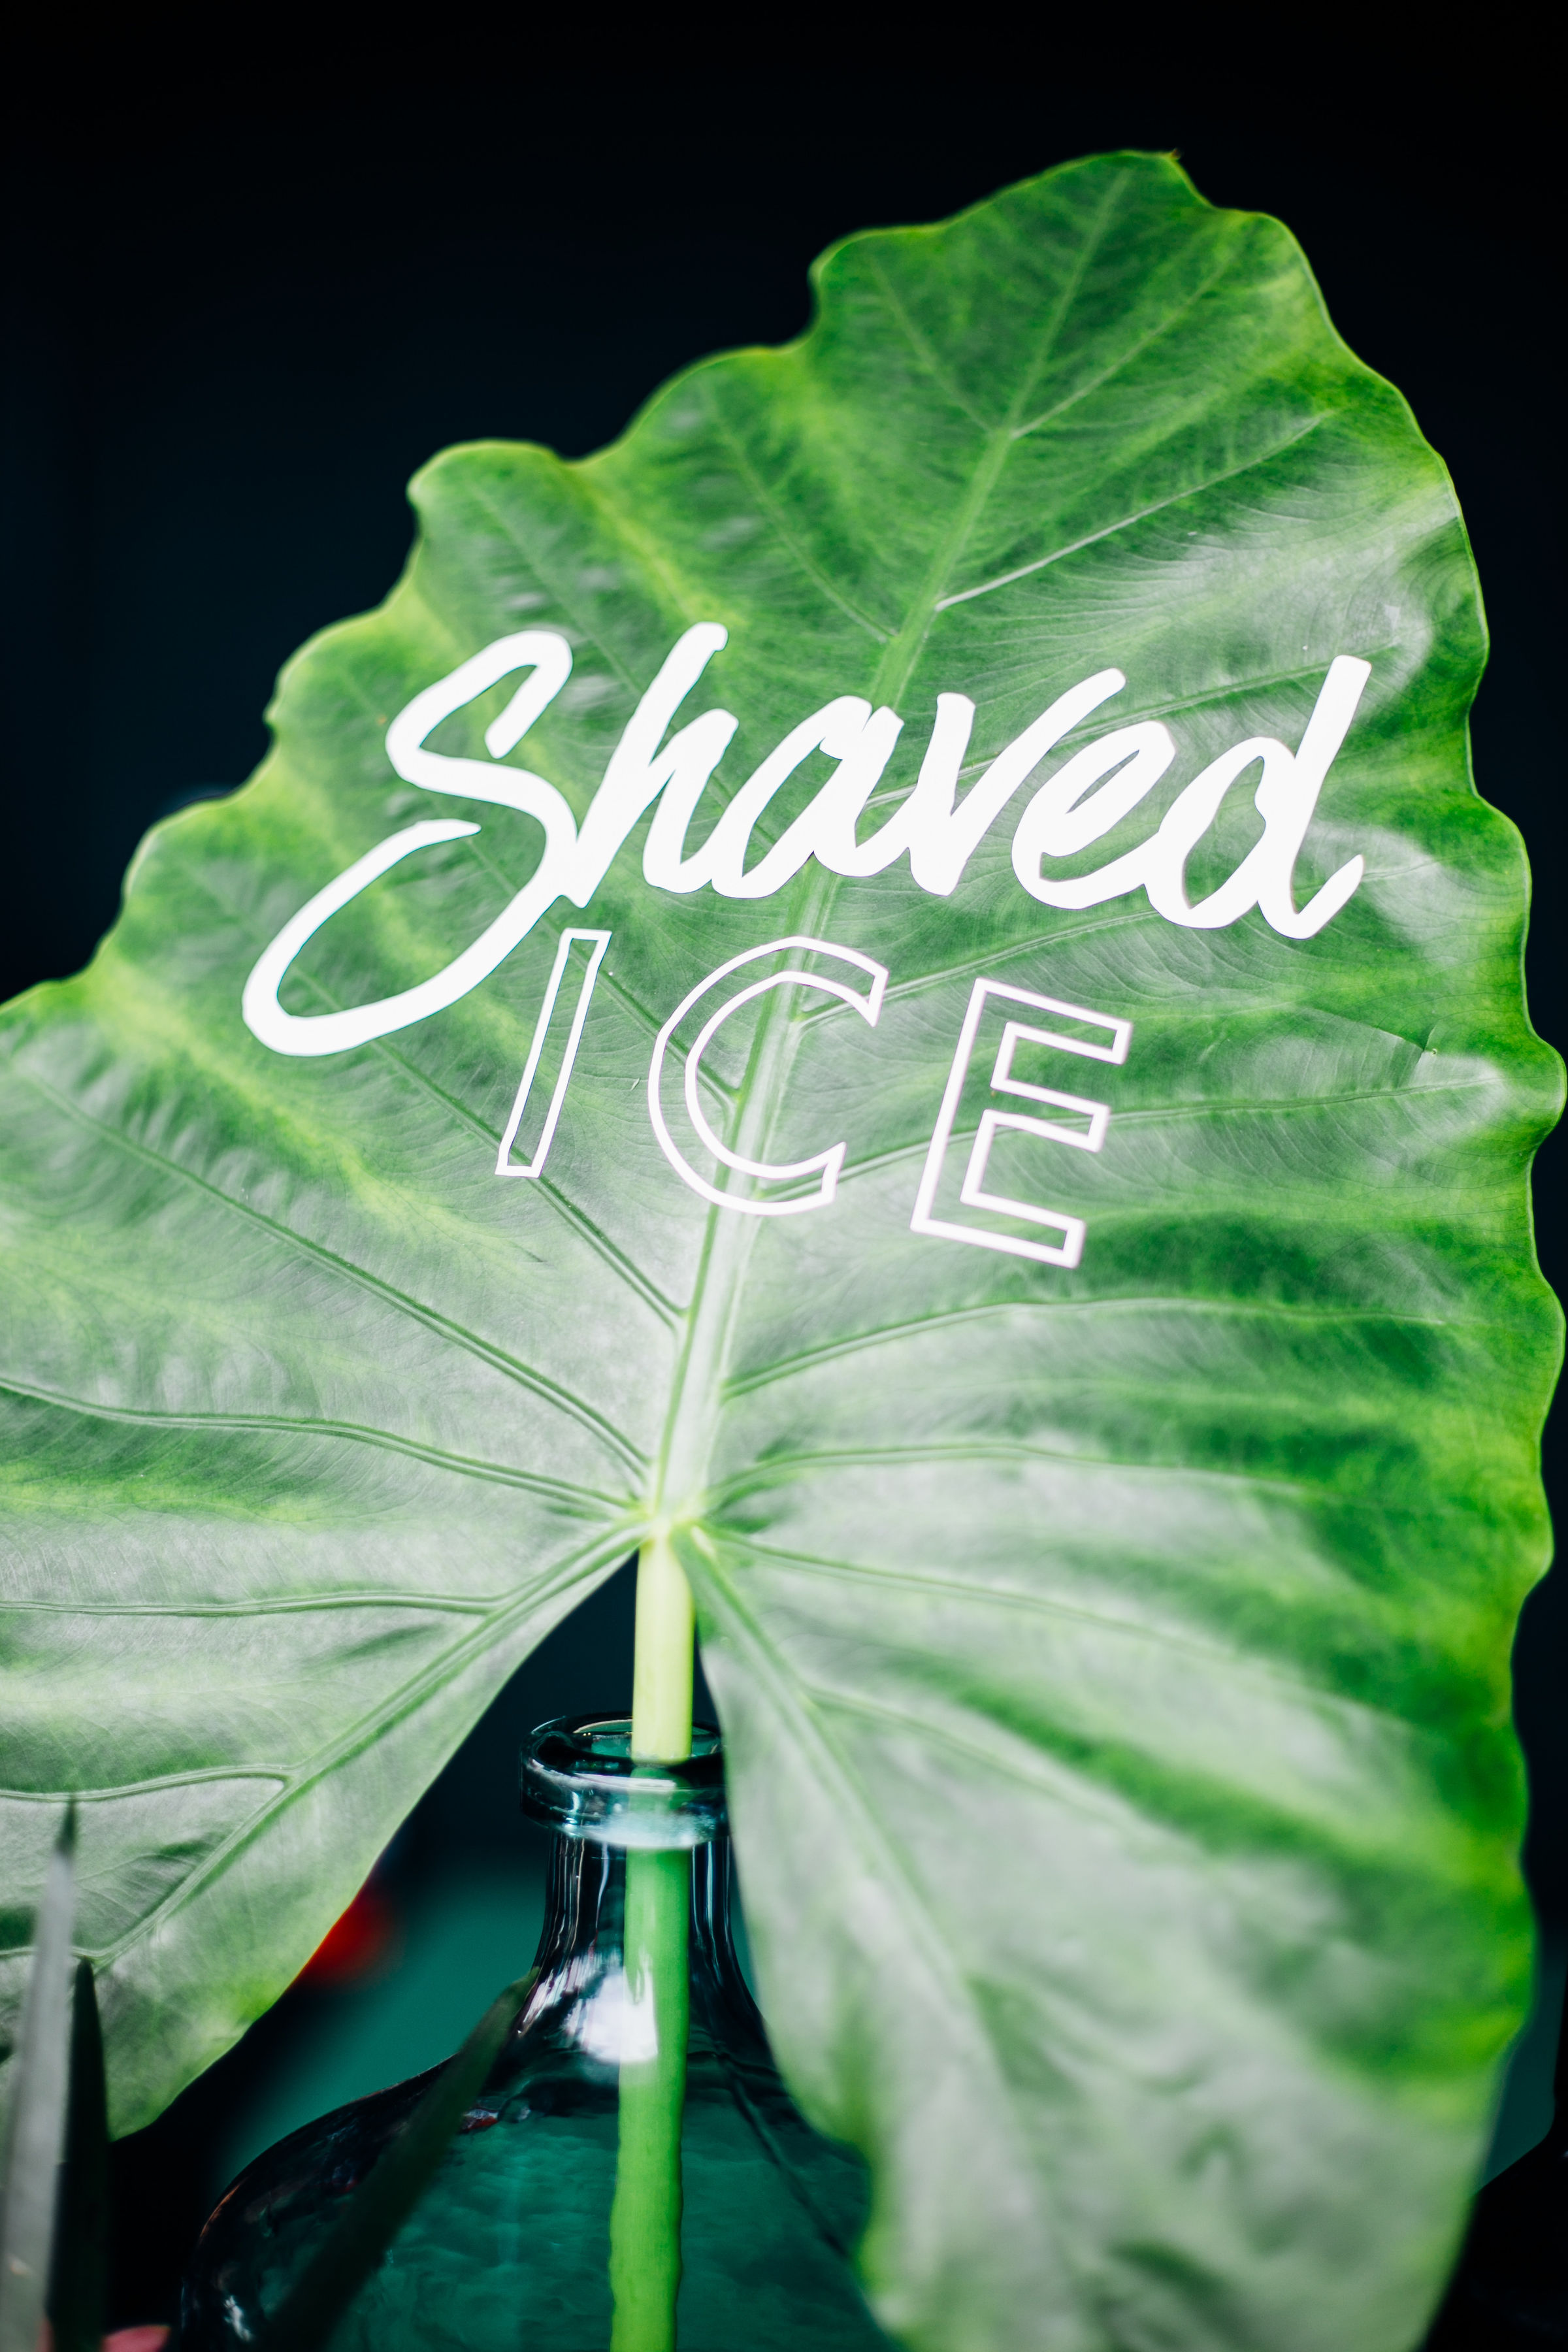 shaved ice decal.jpg